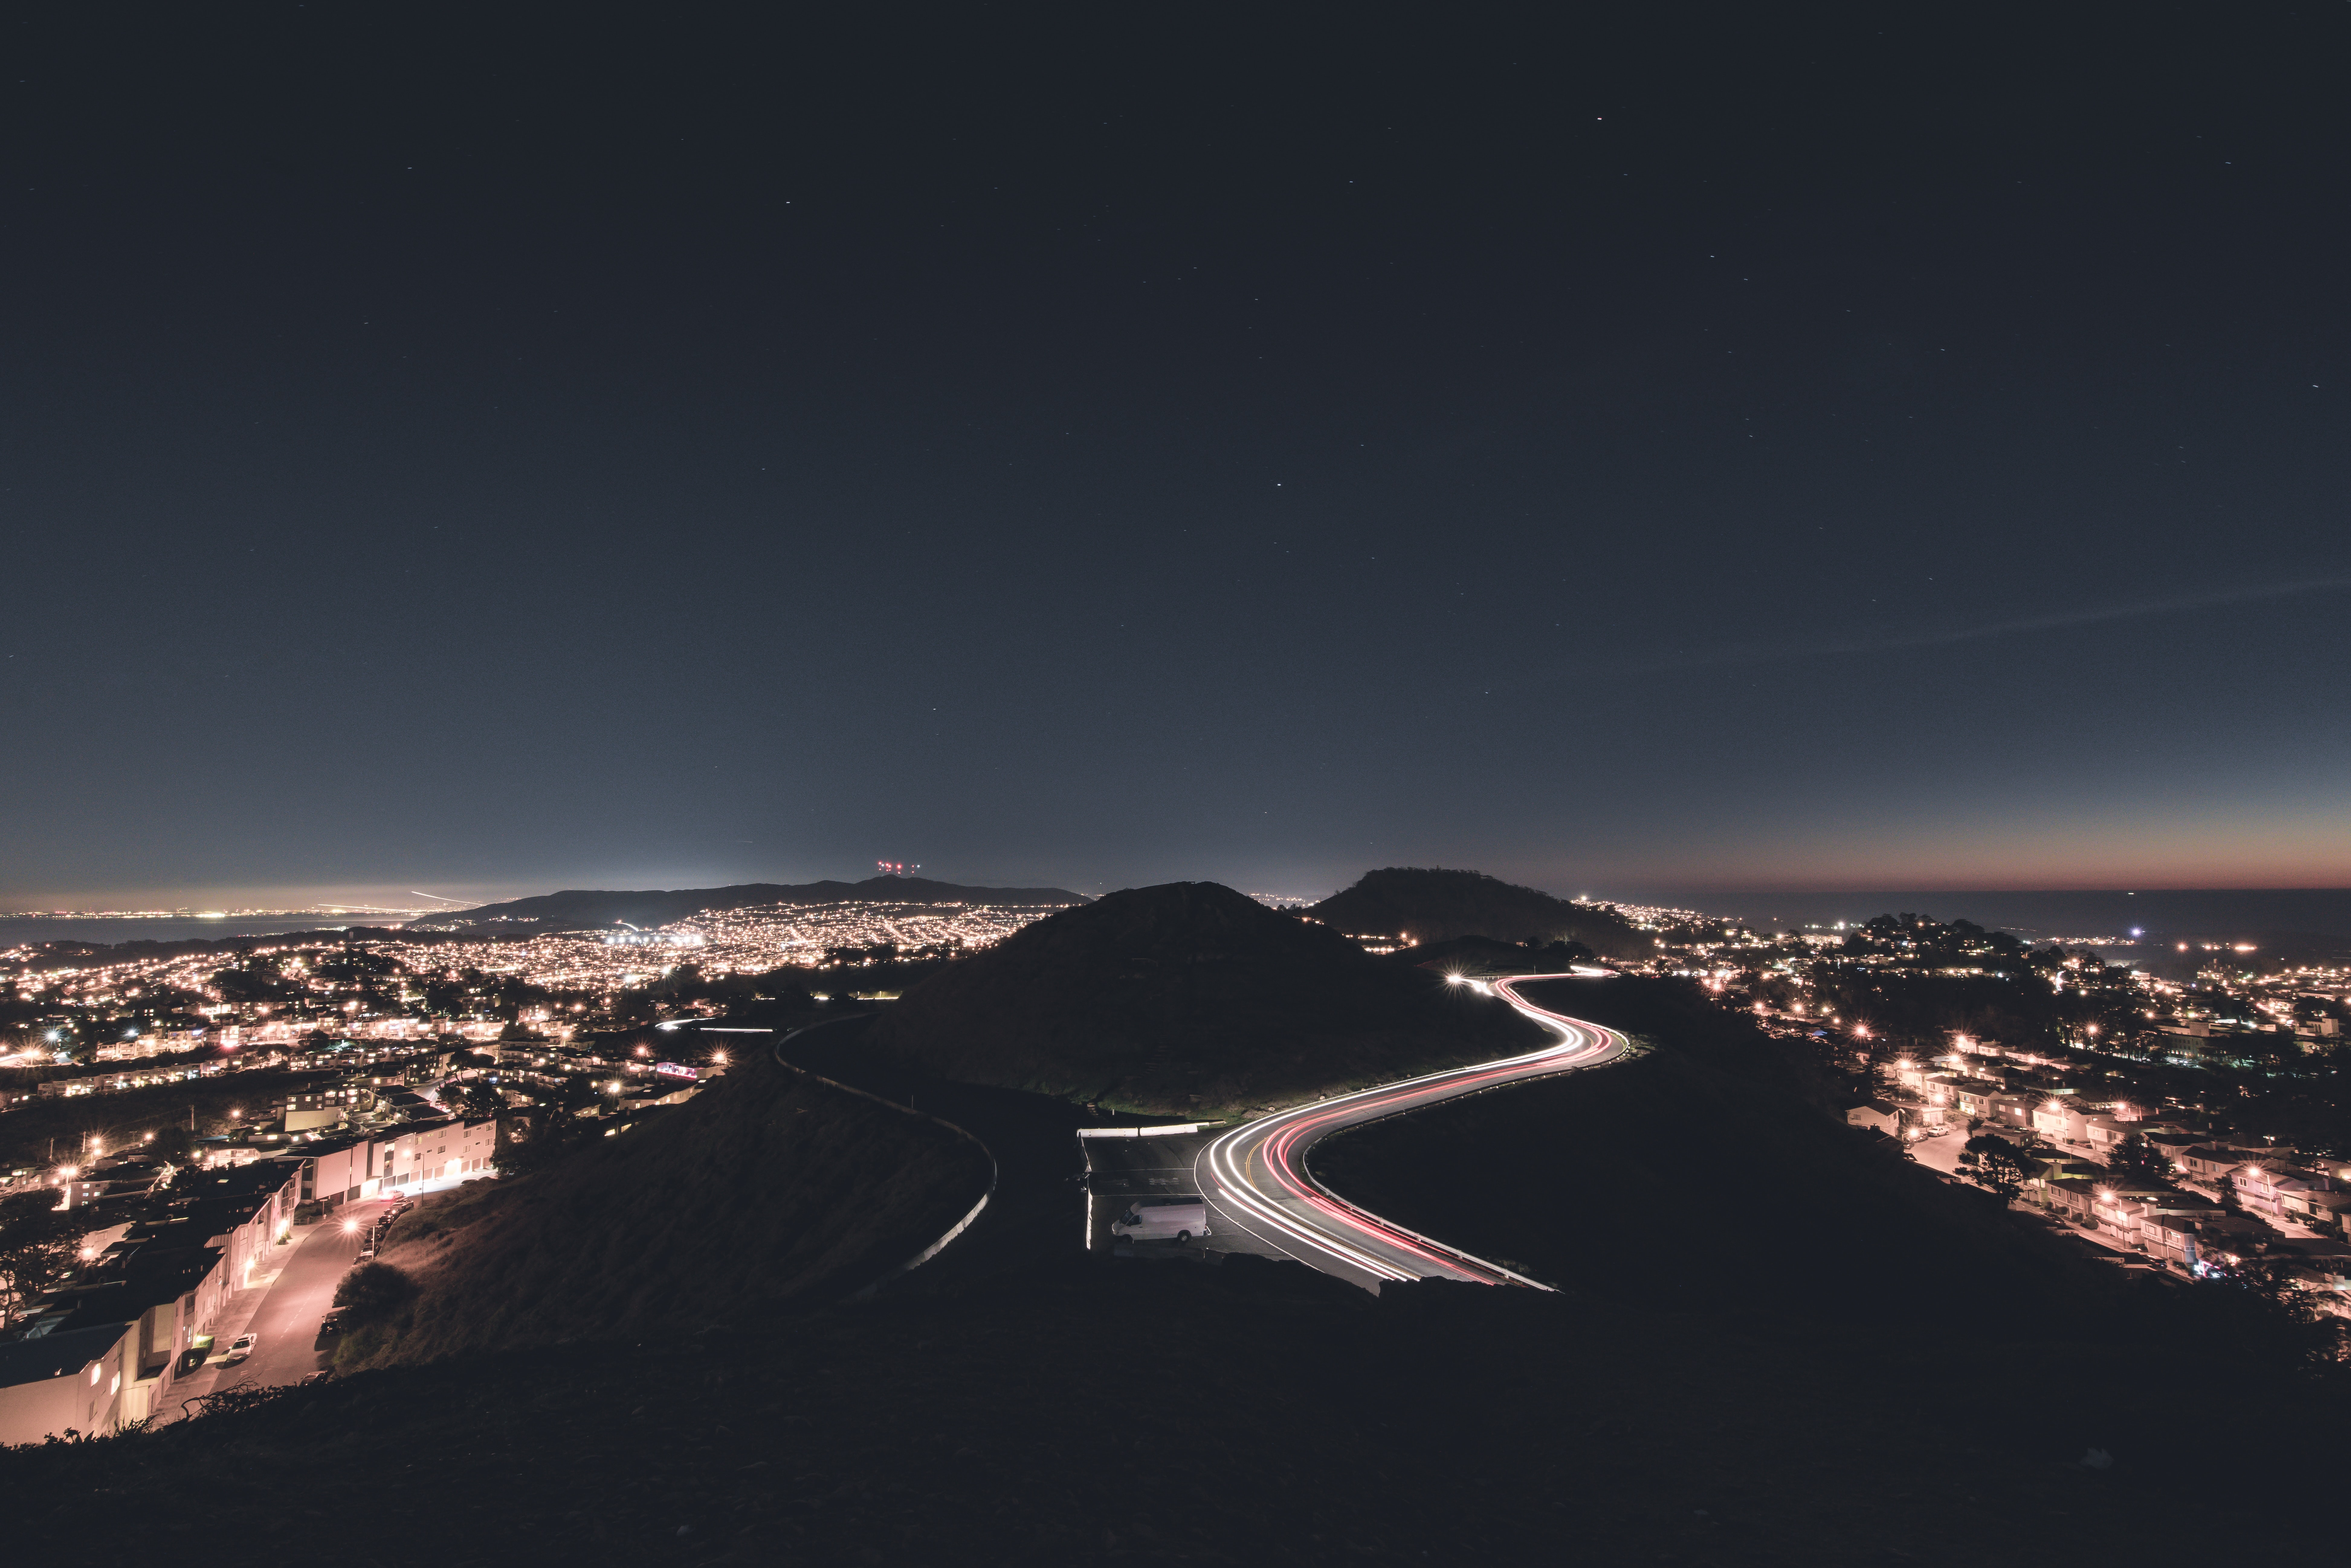 A cityscape image of Twin Peaks, featuring a light trail timelapse on a local road